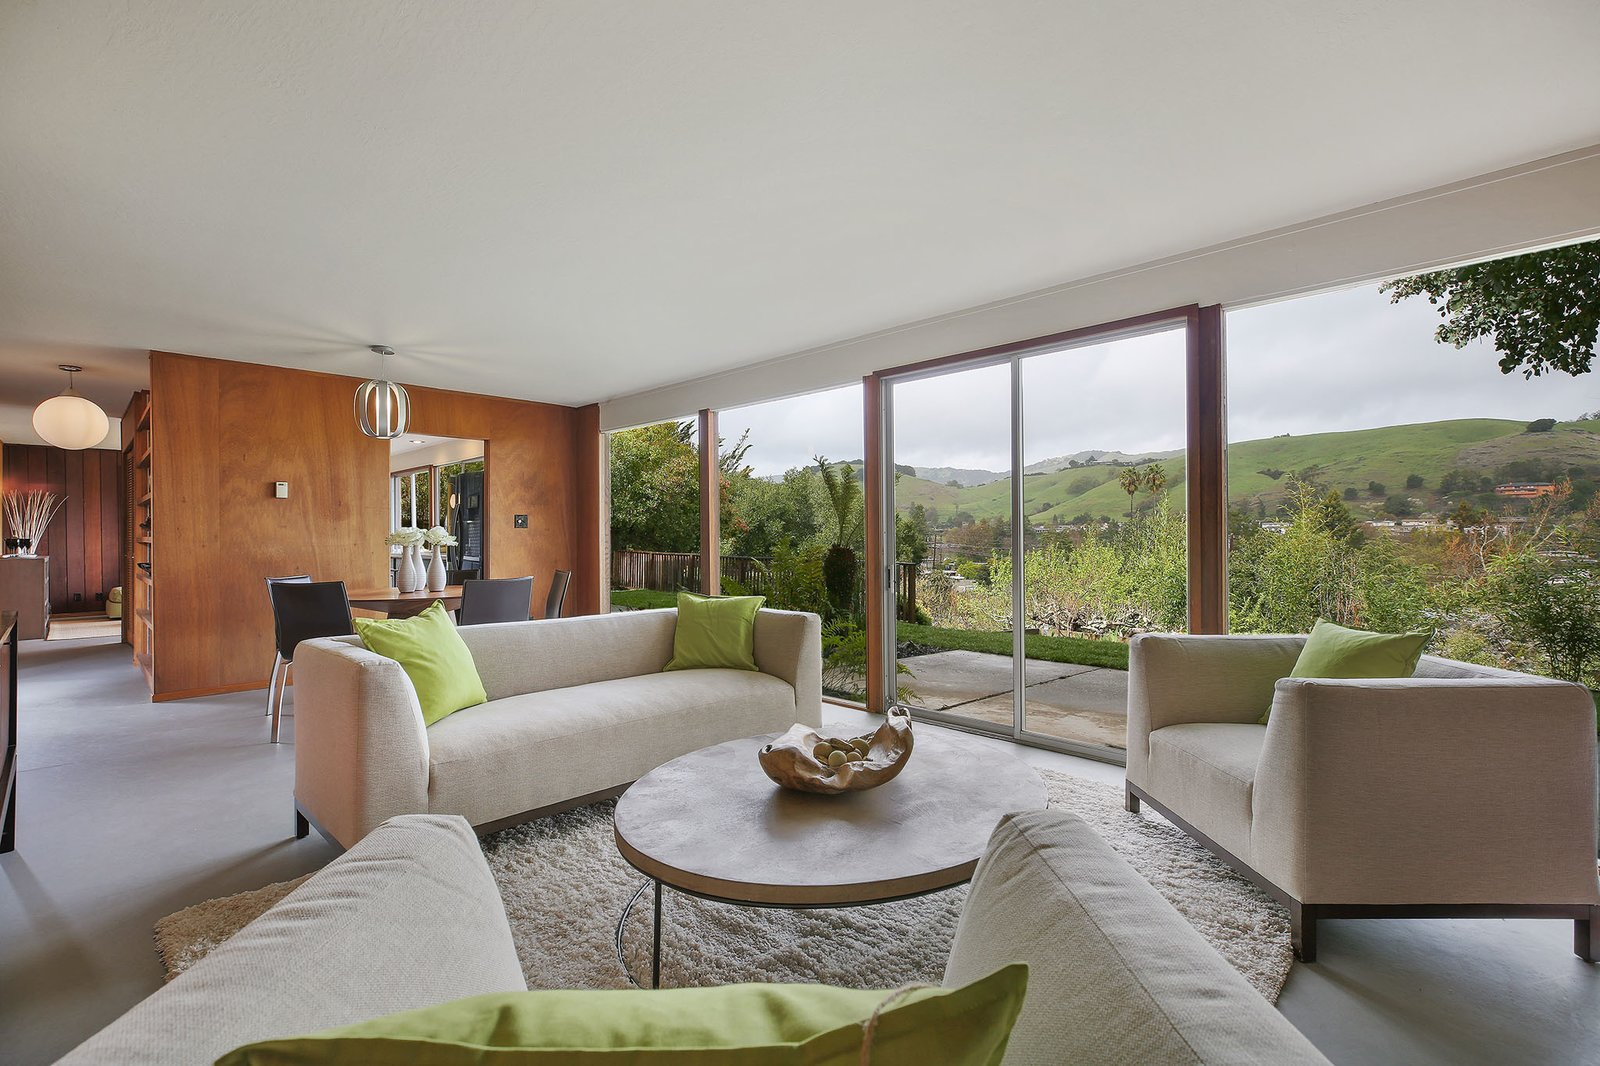 Living Room, Sofa, Chair, Coffee Tables, Concrete Floor, Rug Floor, and Pendant Lighting The wall of glass brings in a strong connection to the outdoors.  Photo 5 of 15 in This Rare Two-Story Eichler Has Just Been Listed For $1.35M